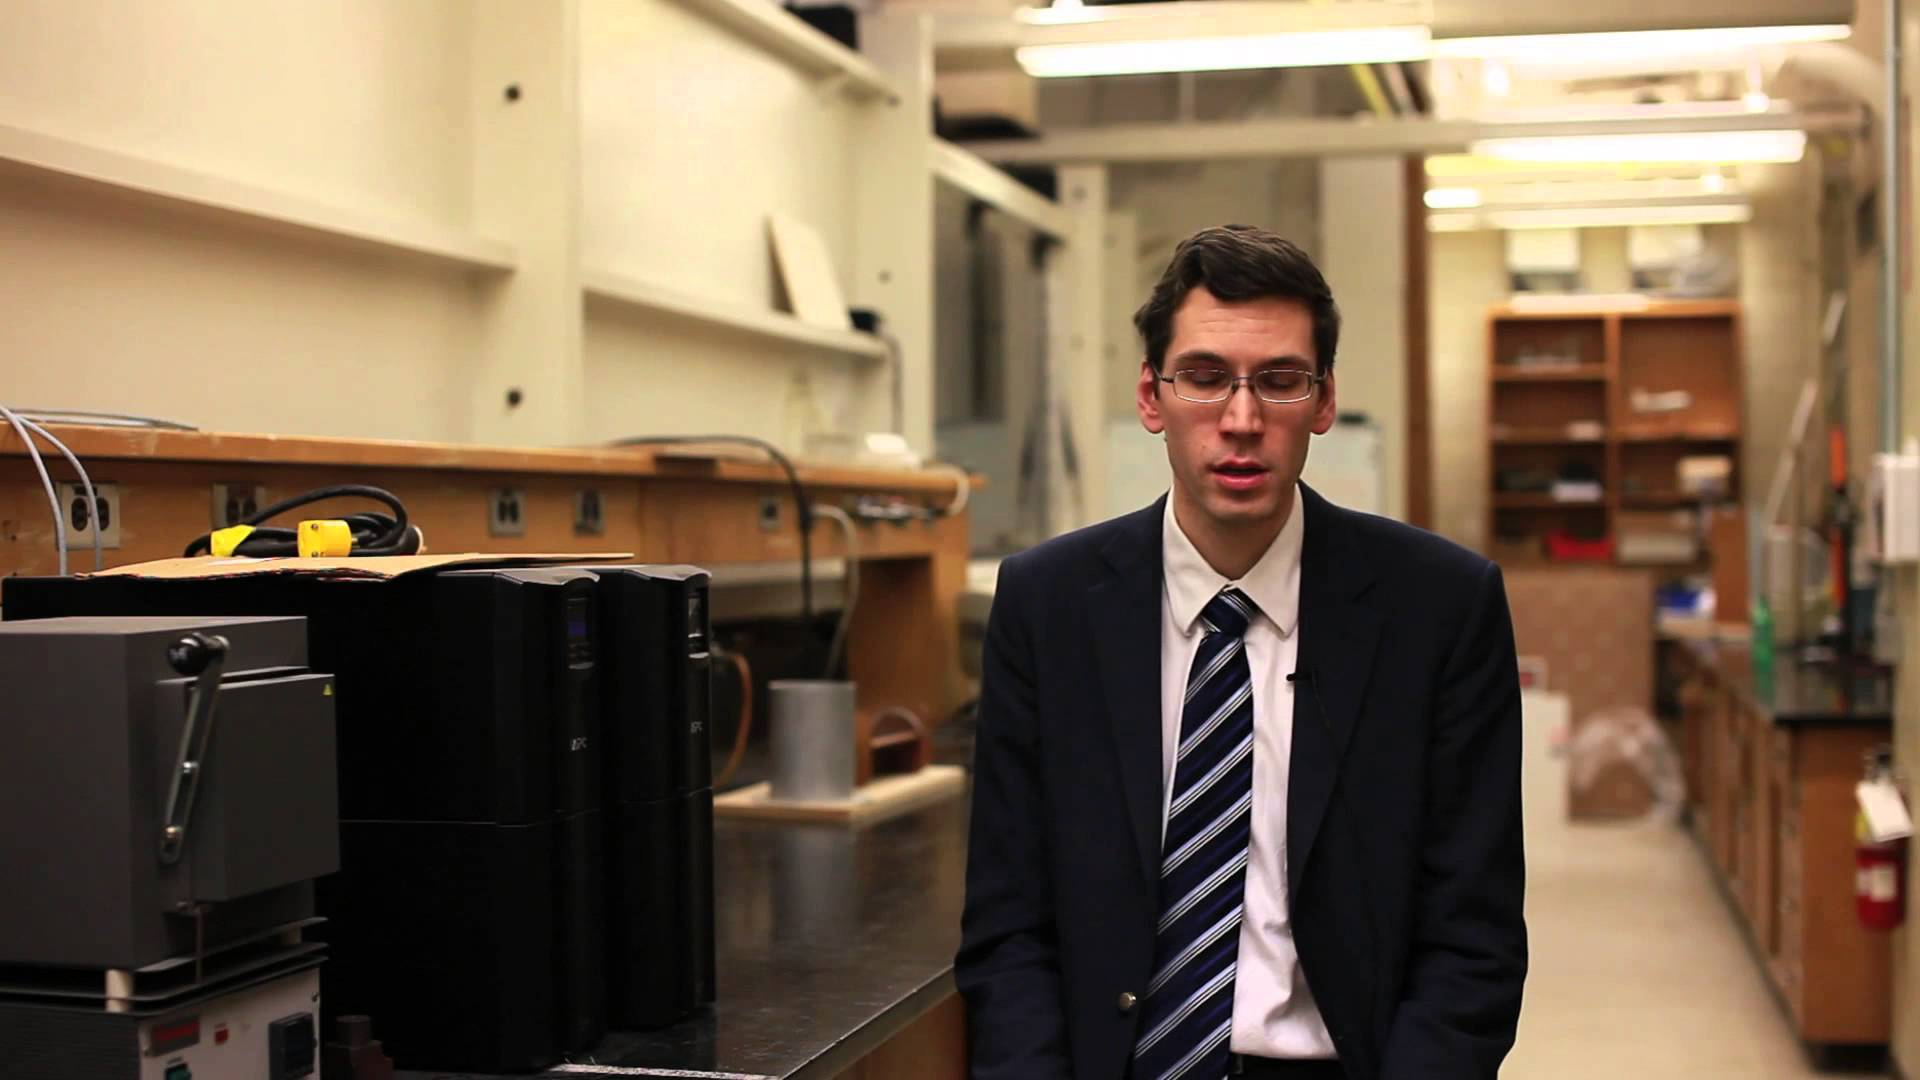 Thumbnail for: Carleton's Master's Programs in Sustainable Energy